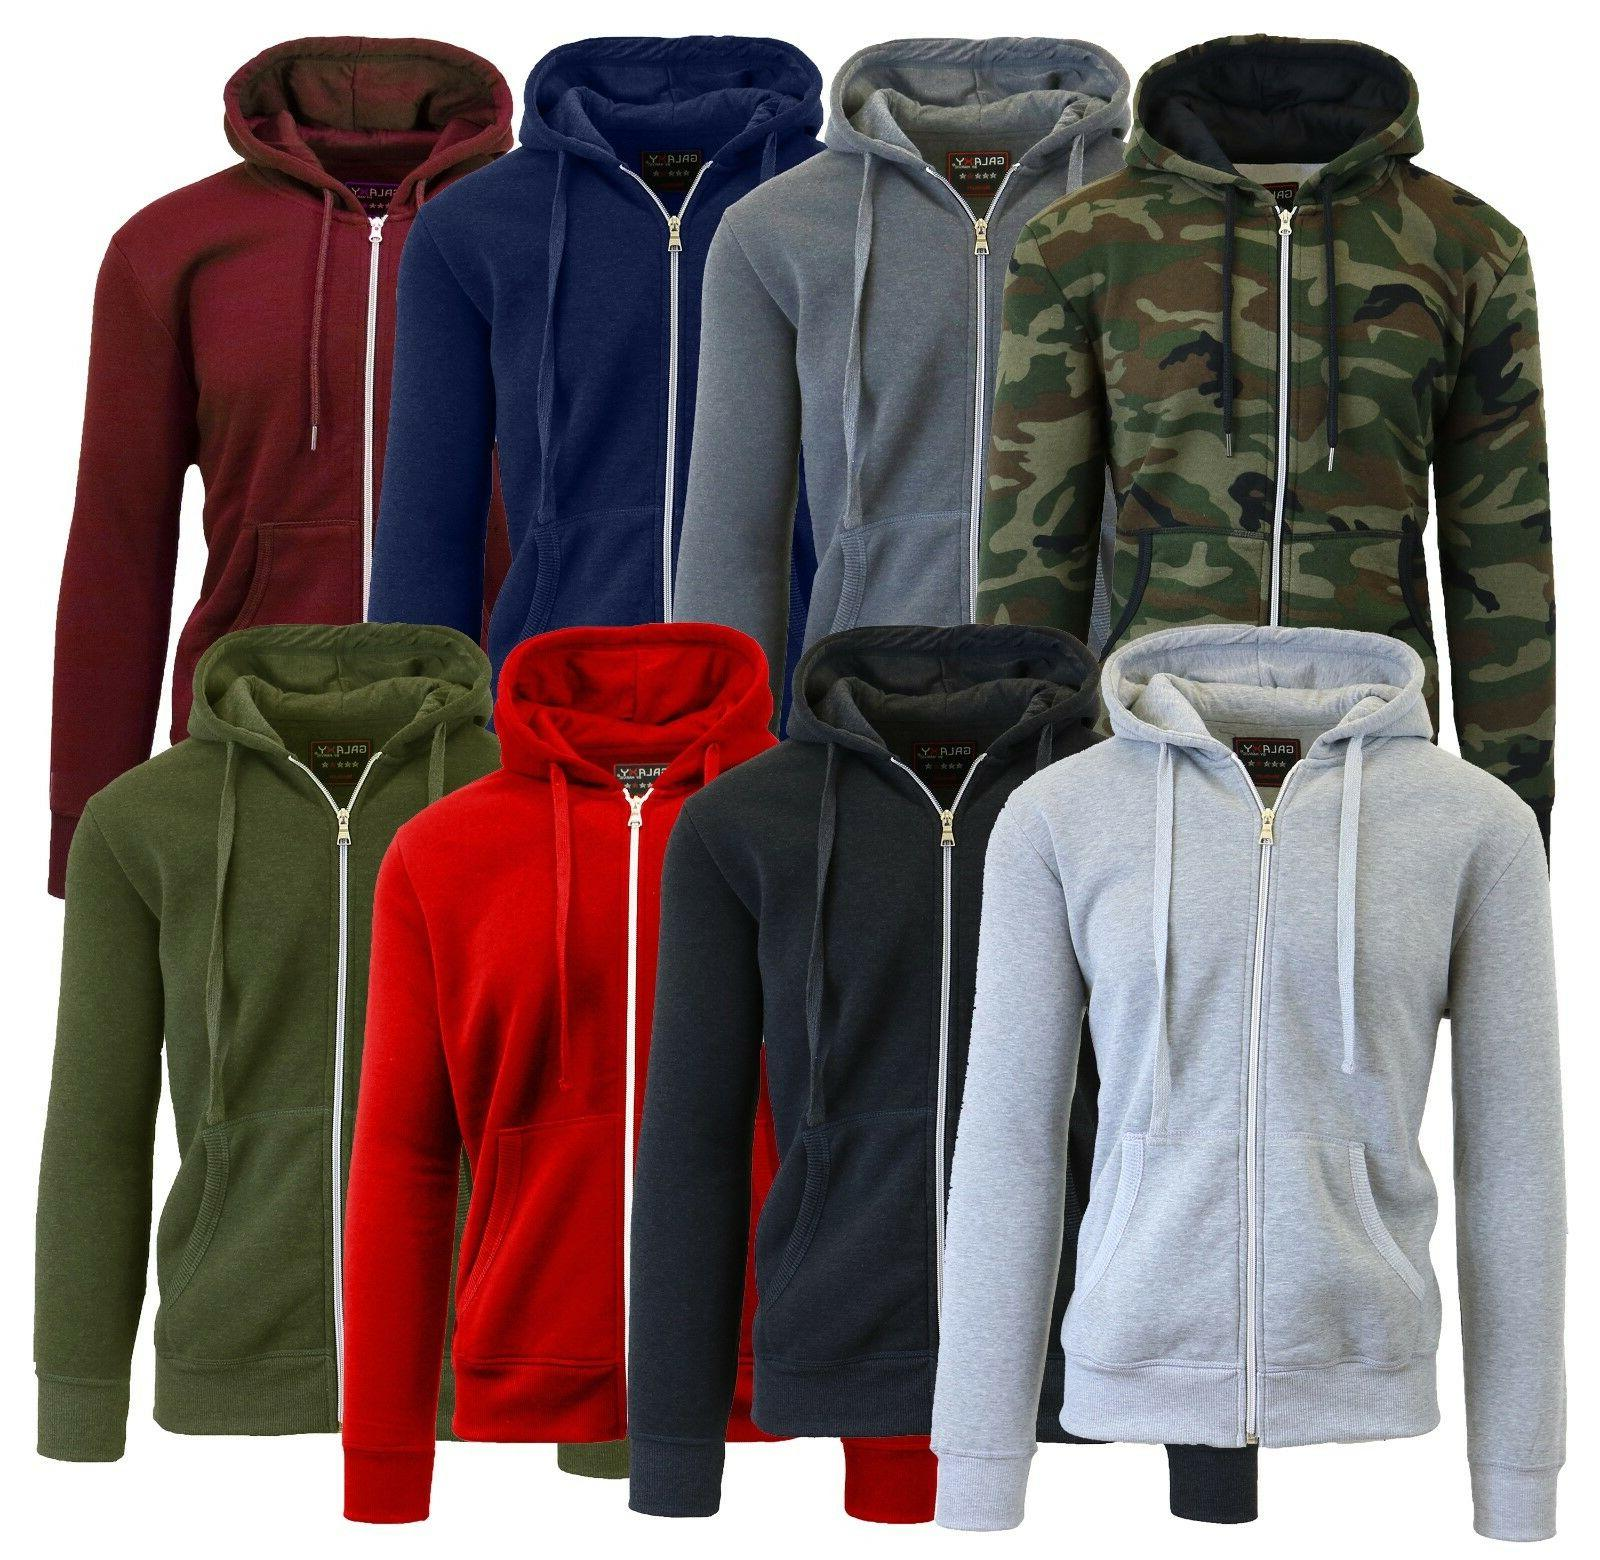 Mens Fleece Hoodie Jacket Sweater For Layering Warm Lounge F